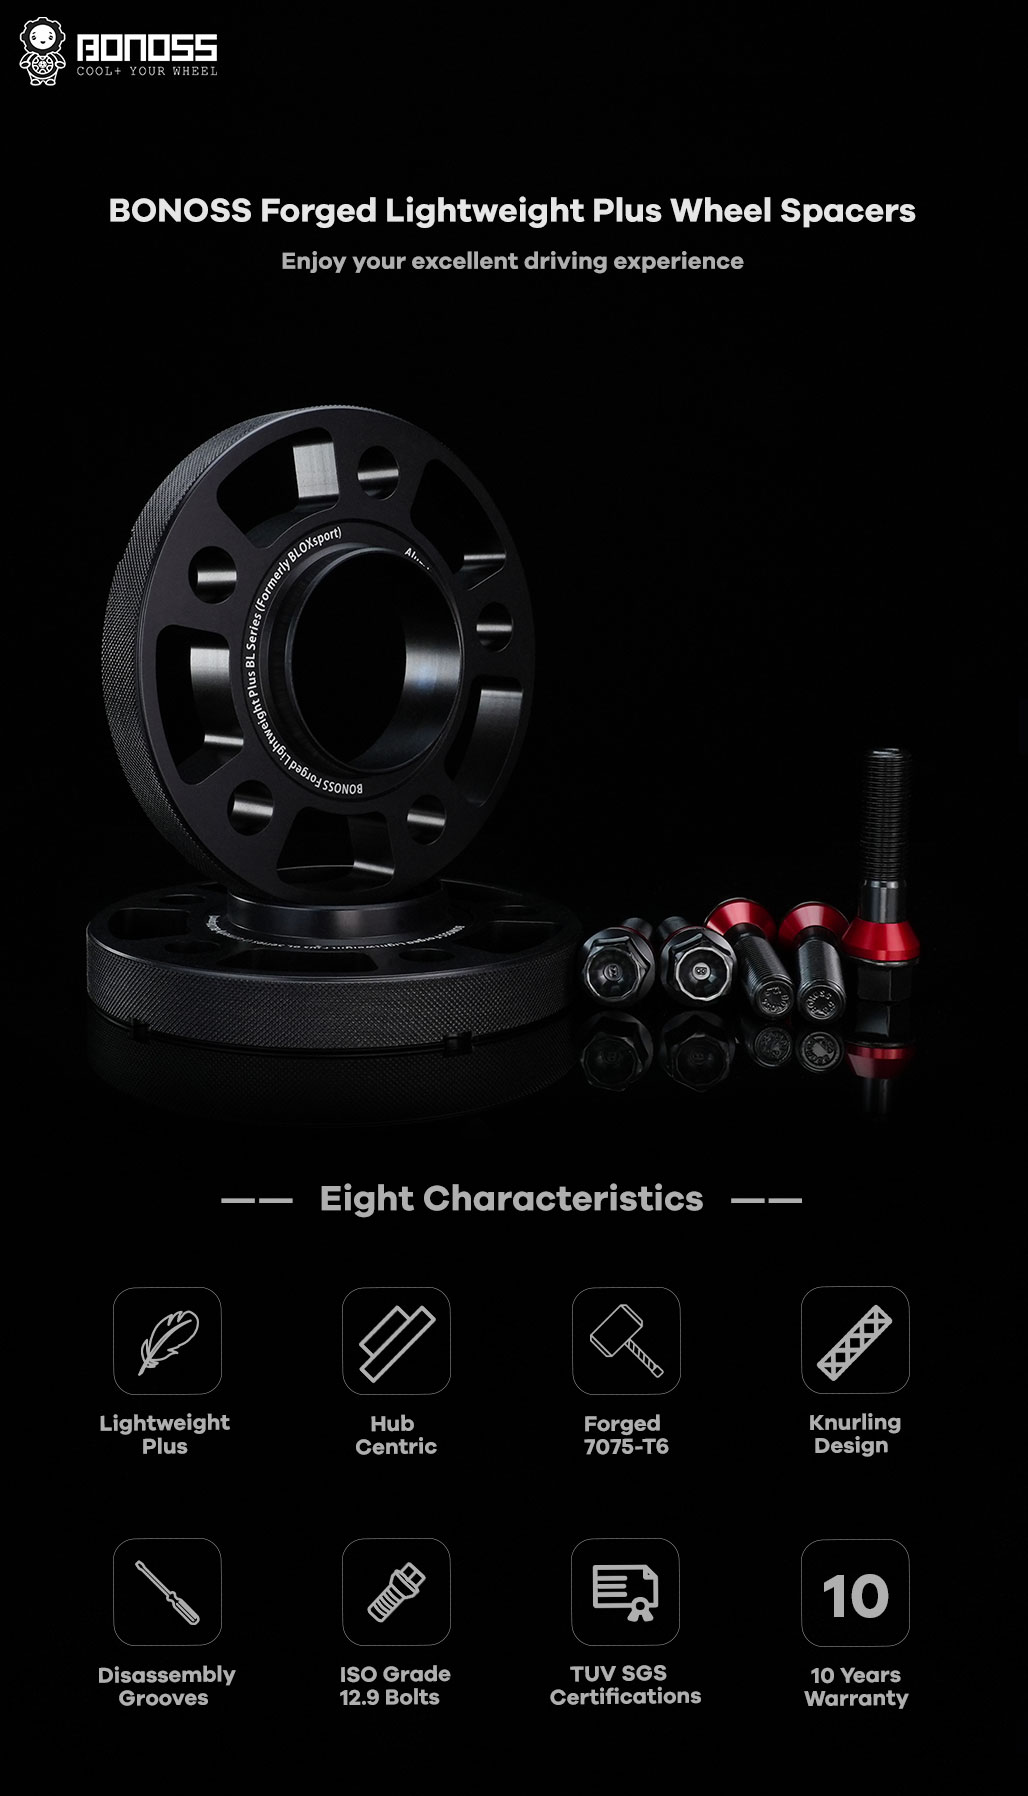 BONOSS Forged Lightweight Plus Hubcentric Wheel Spacers 5 Lug Wheel Adapters Wheel ET Spacers AL7075-T6